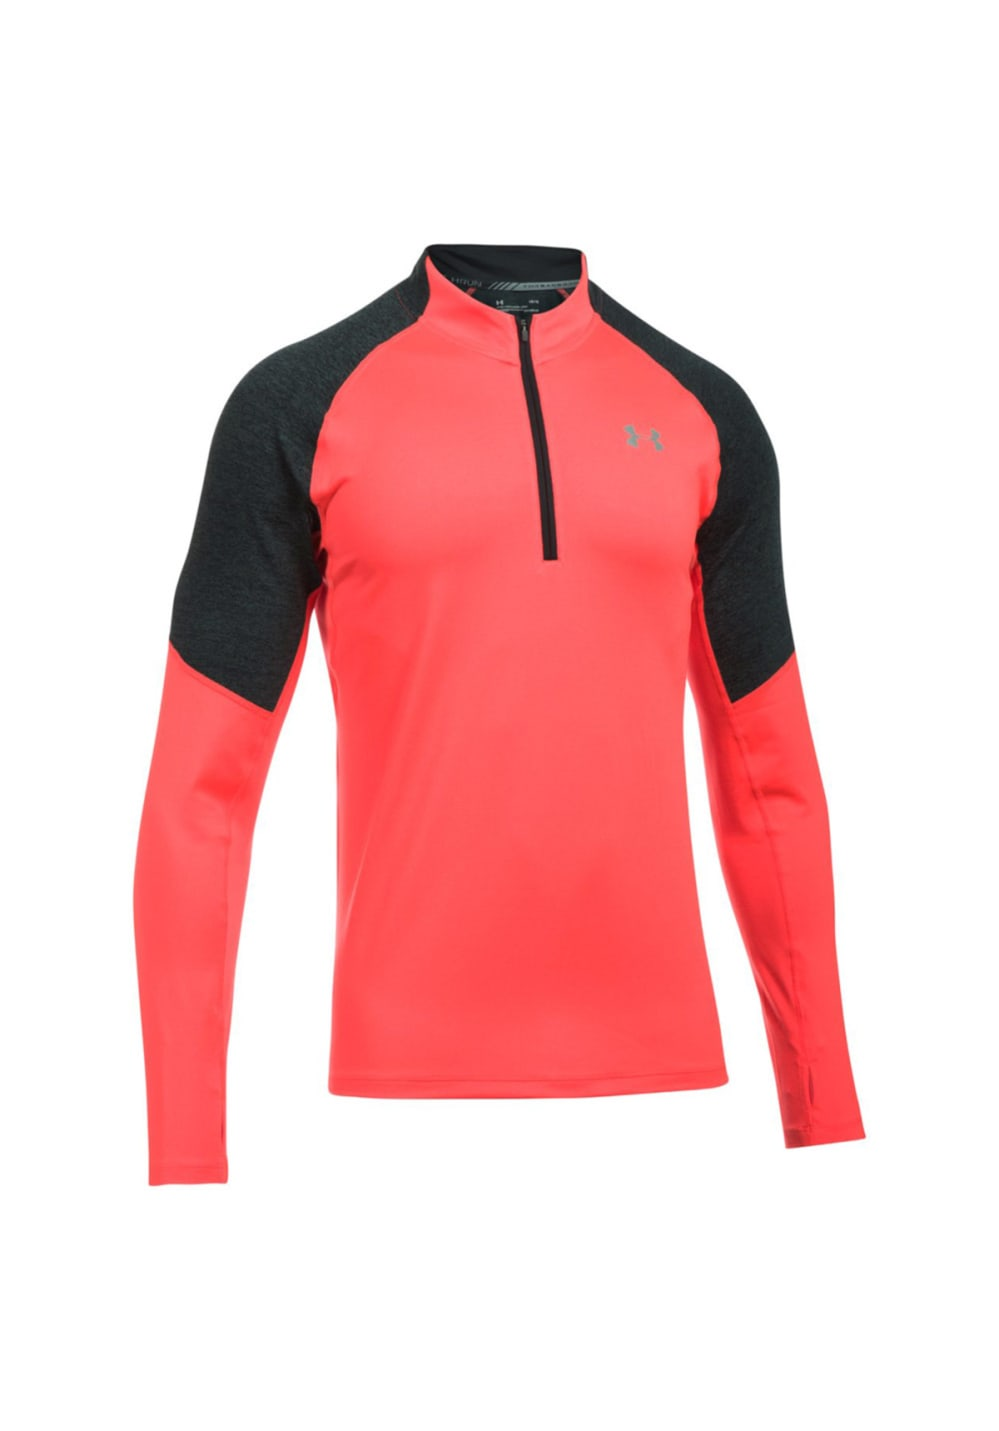 Under Armour Threadborne Run 1/4 Zip - Laufshirts für Herren - Pink, Gr. L